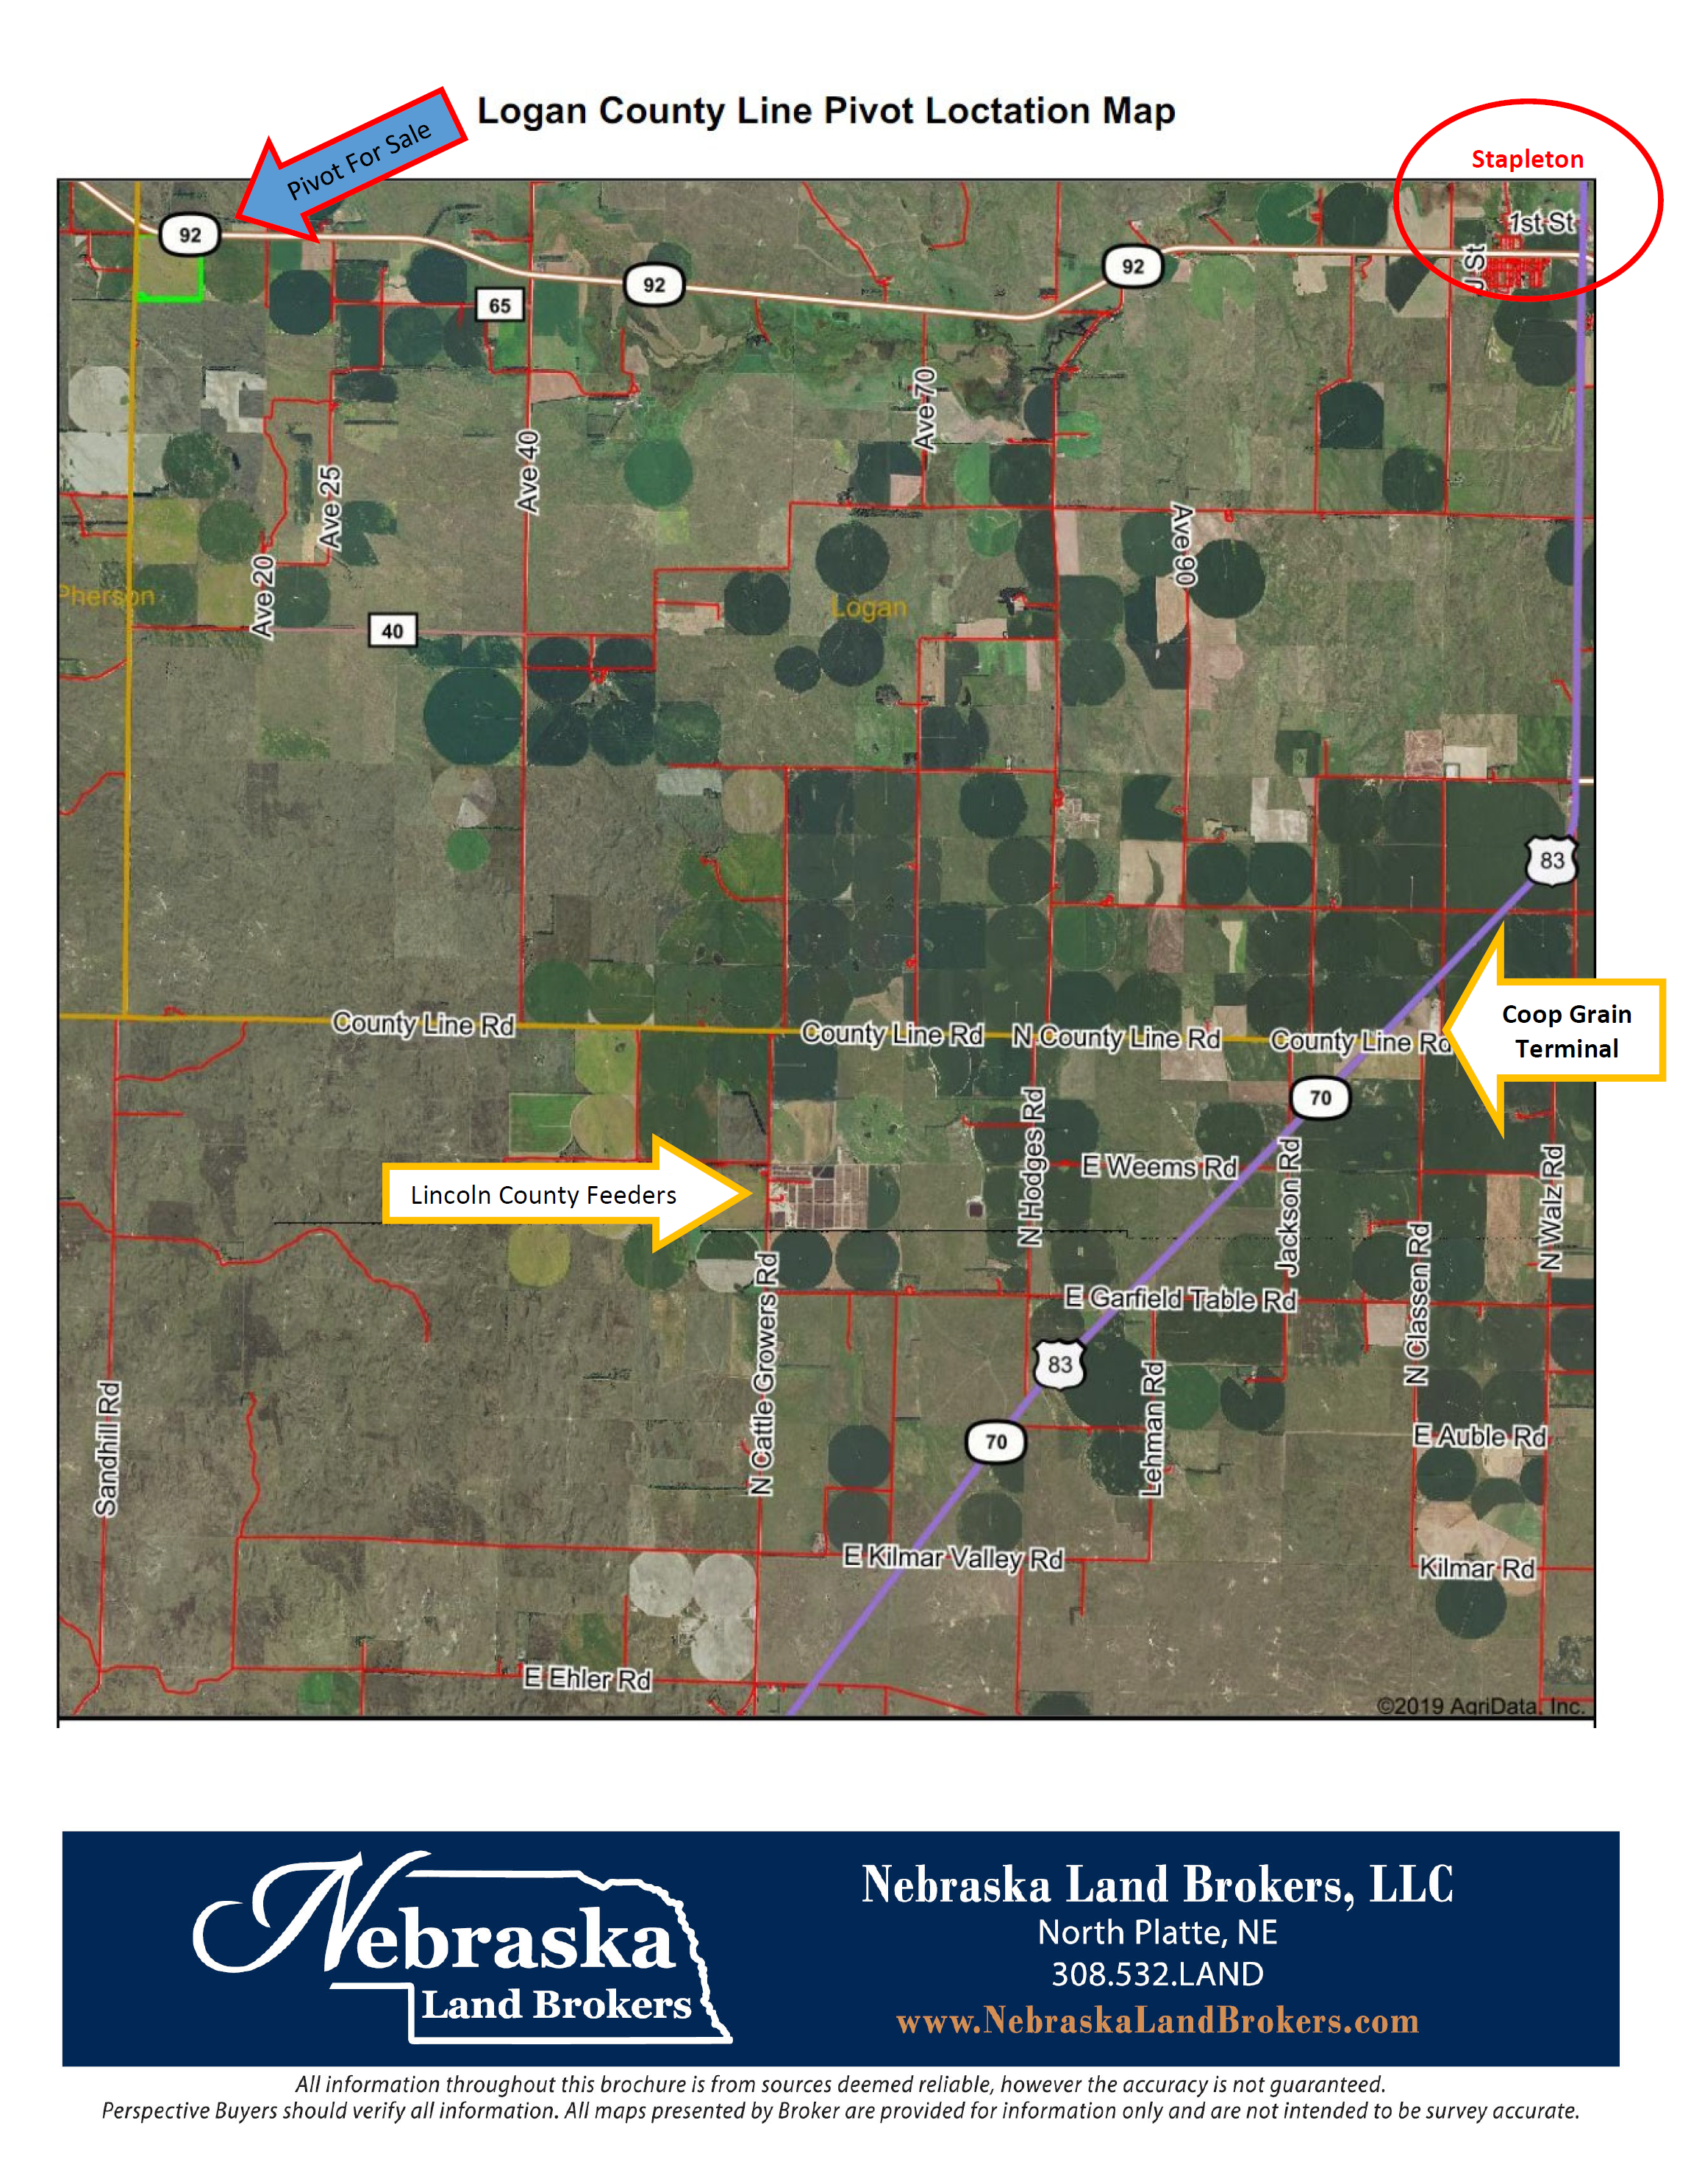 Logan County Line Pivot Location Map.png